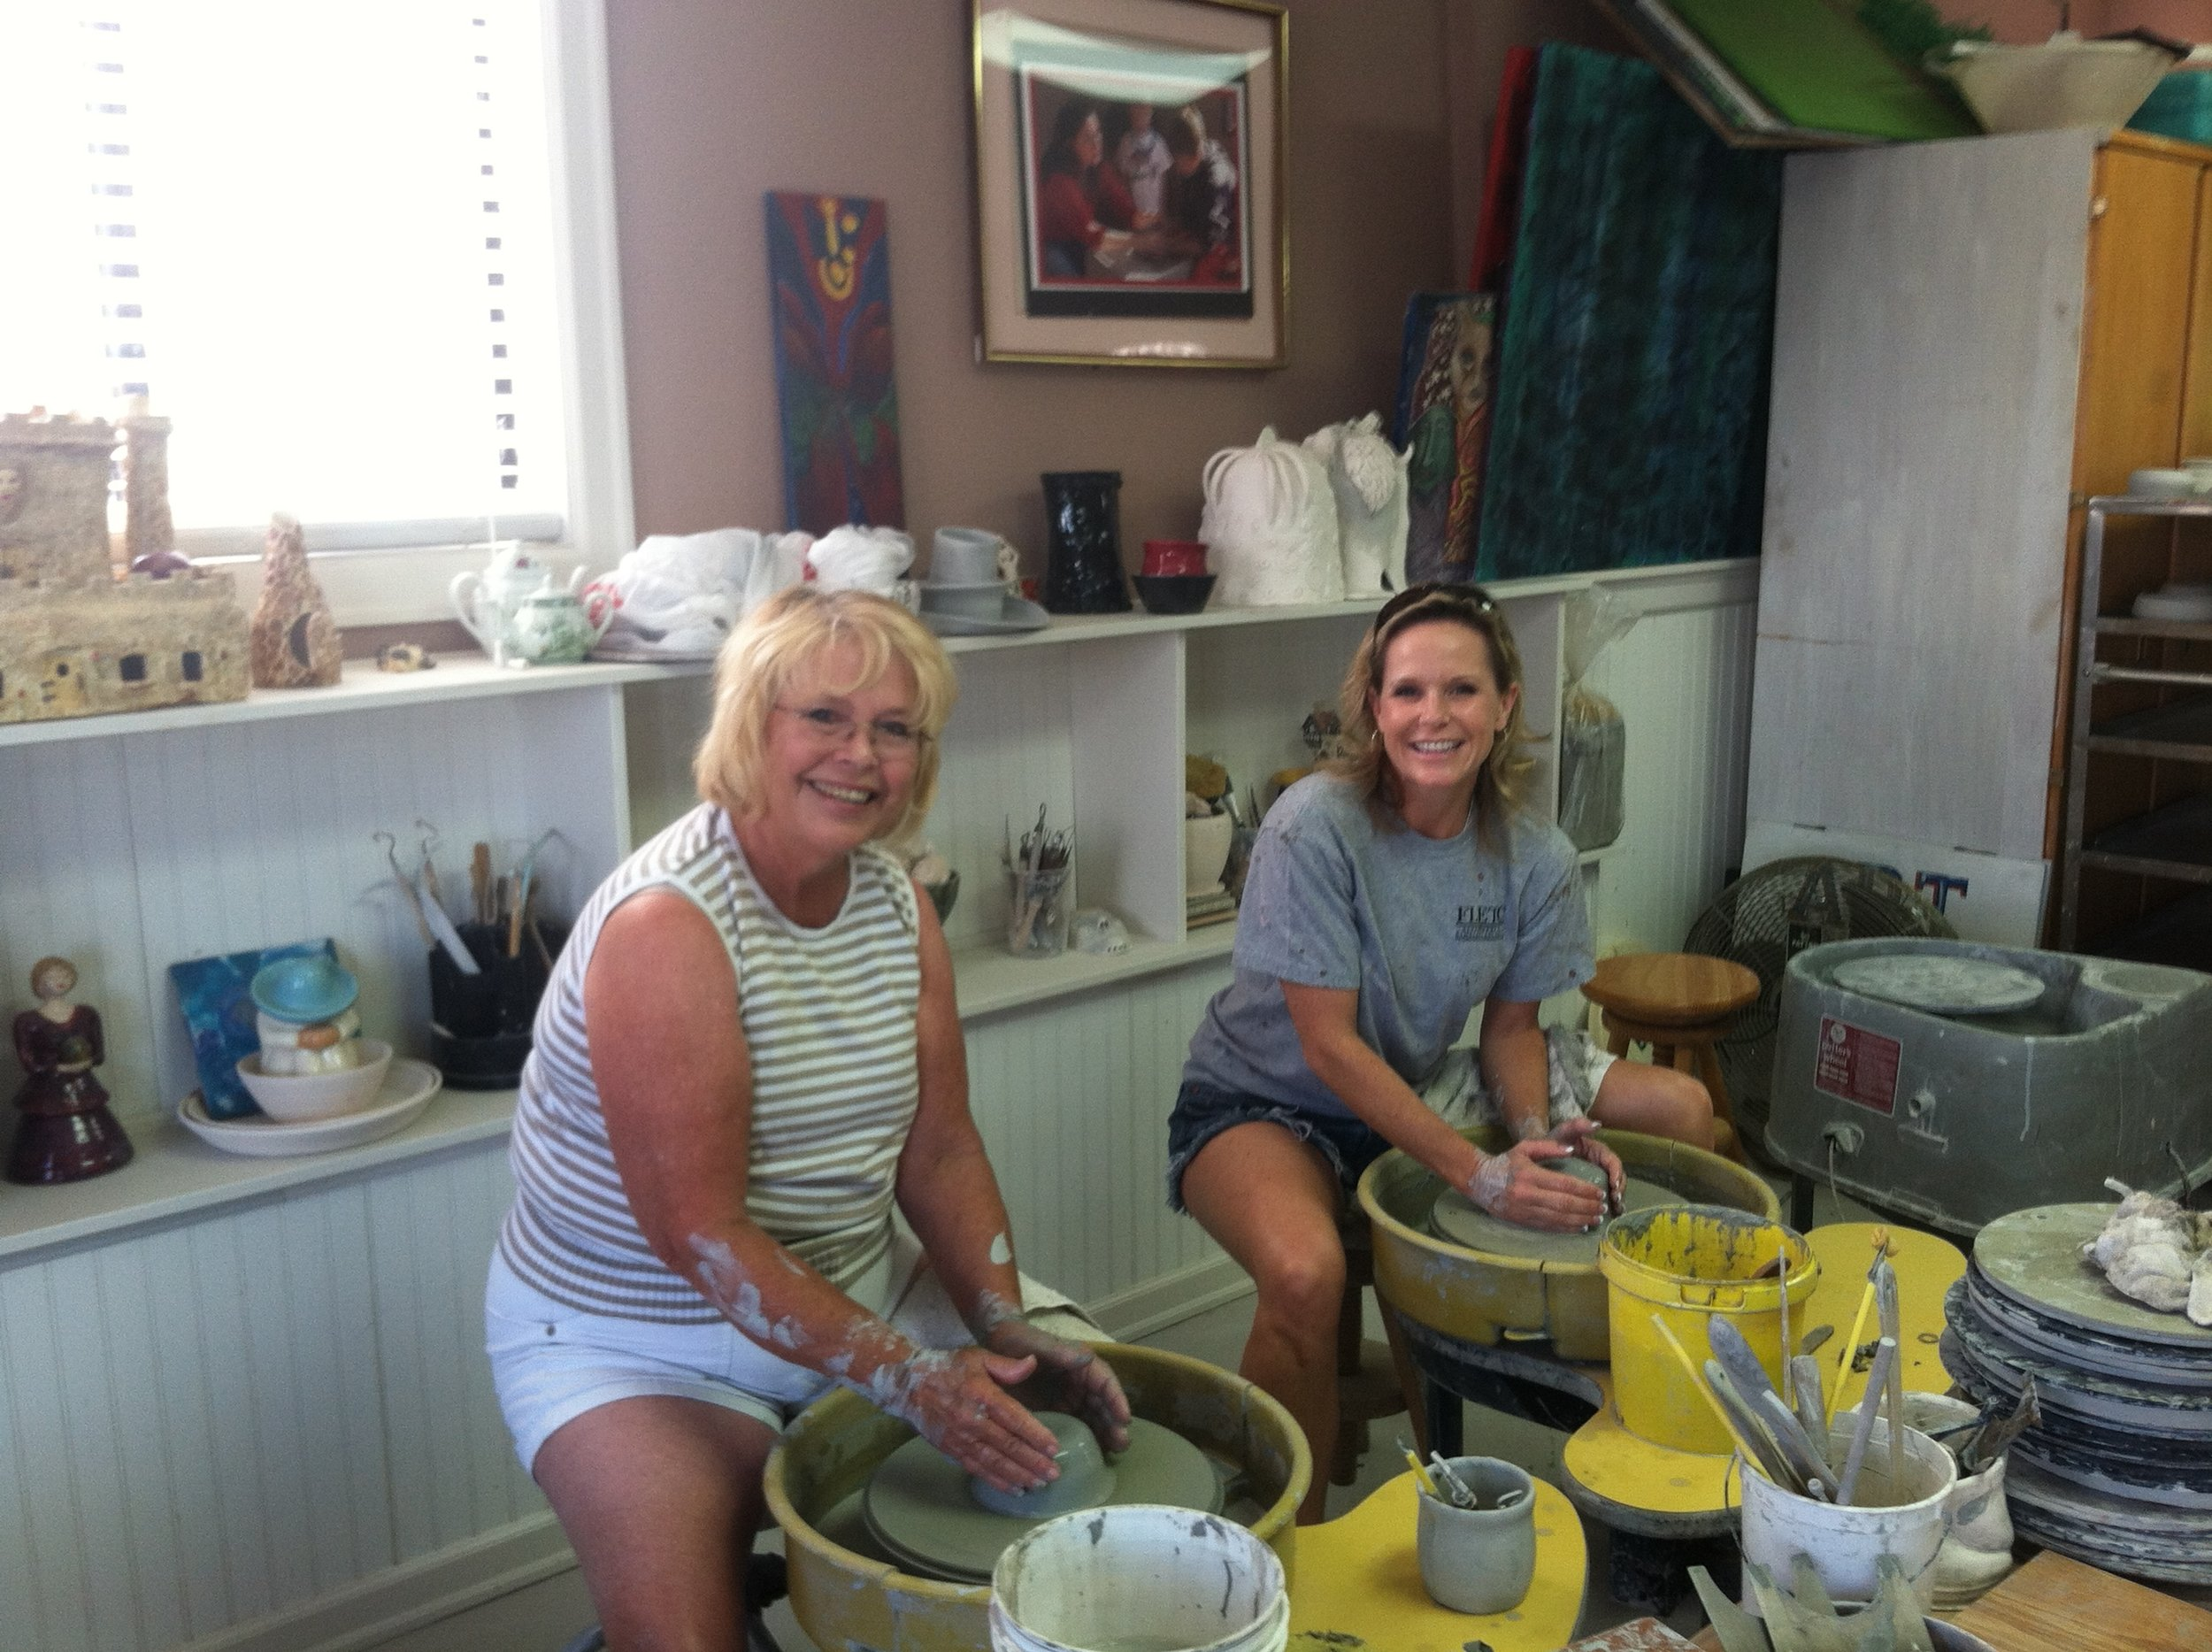 Making pottery with my mom